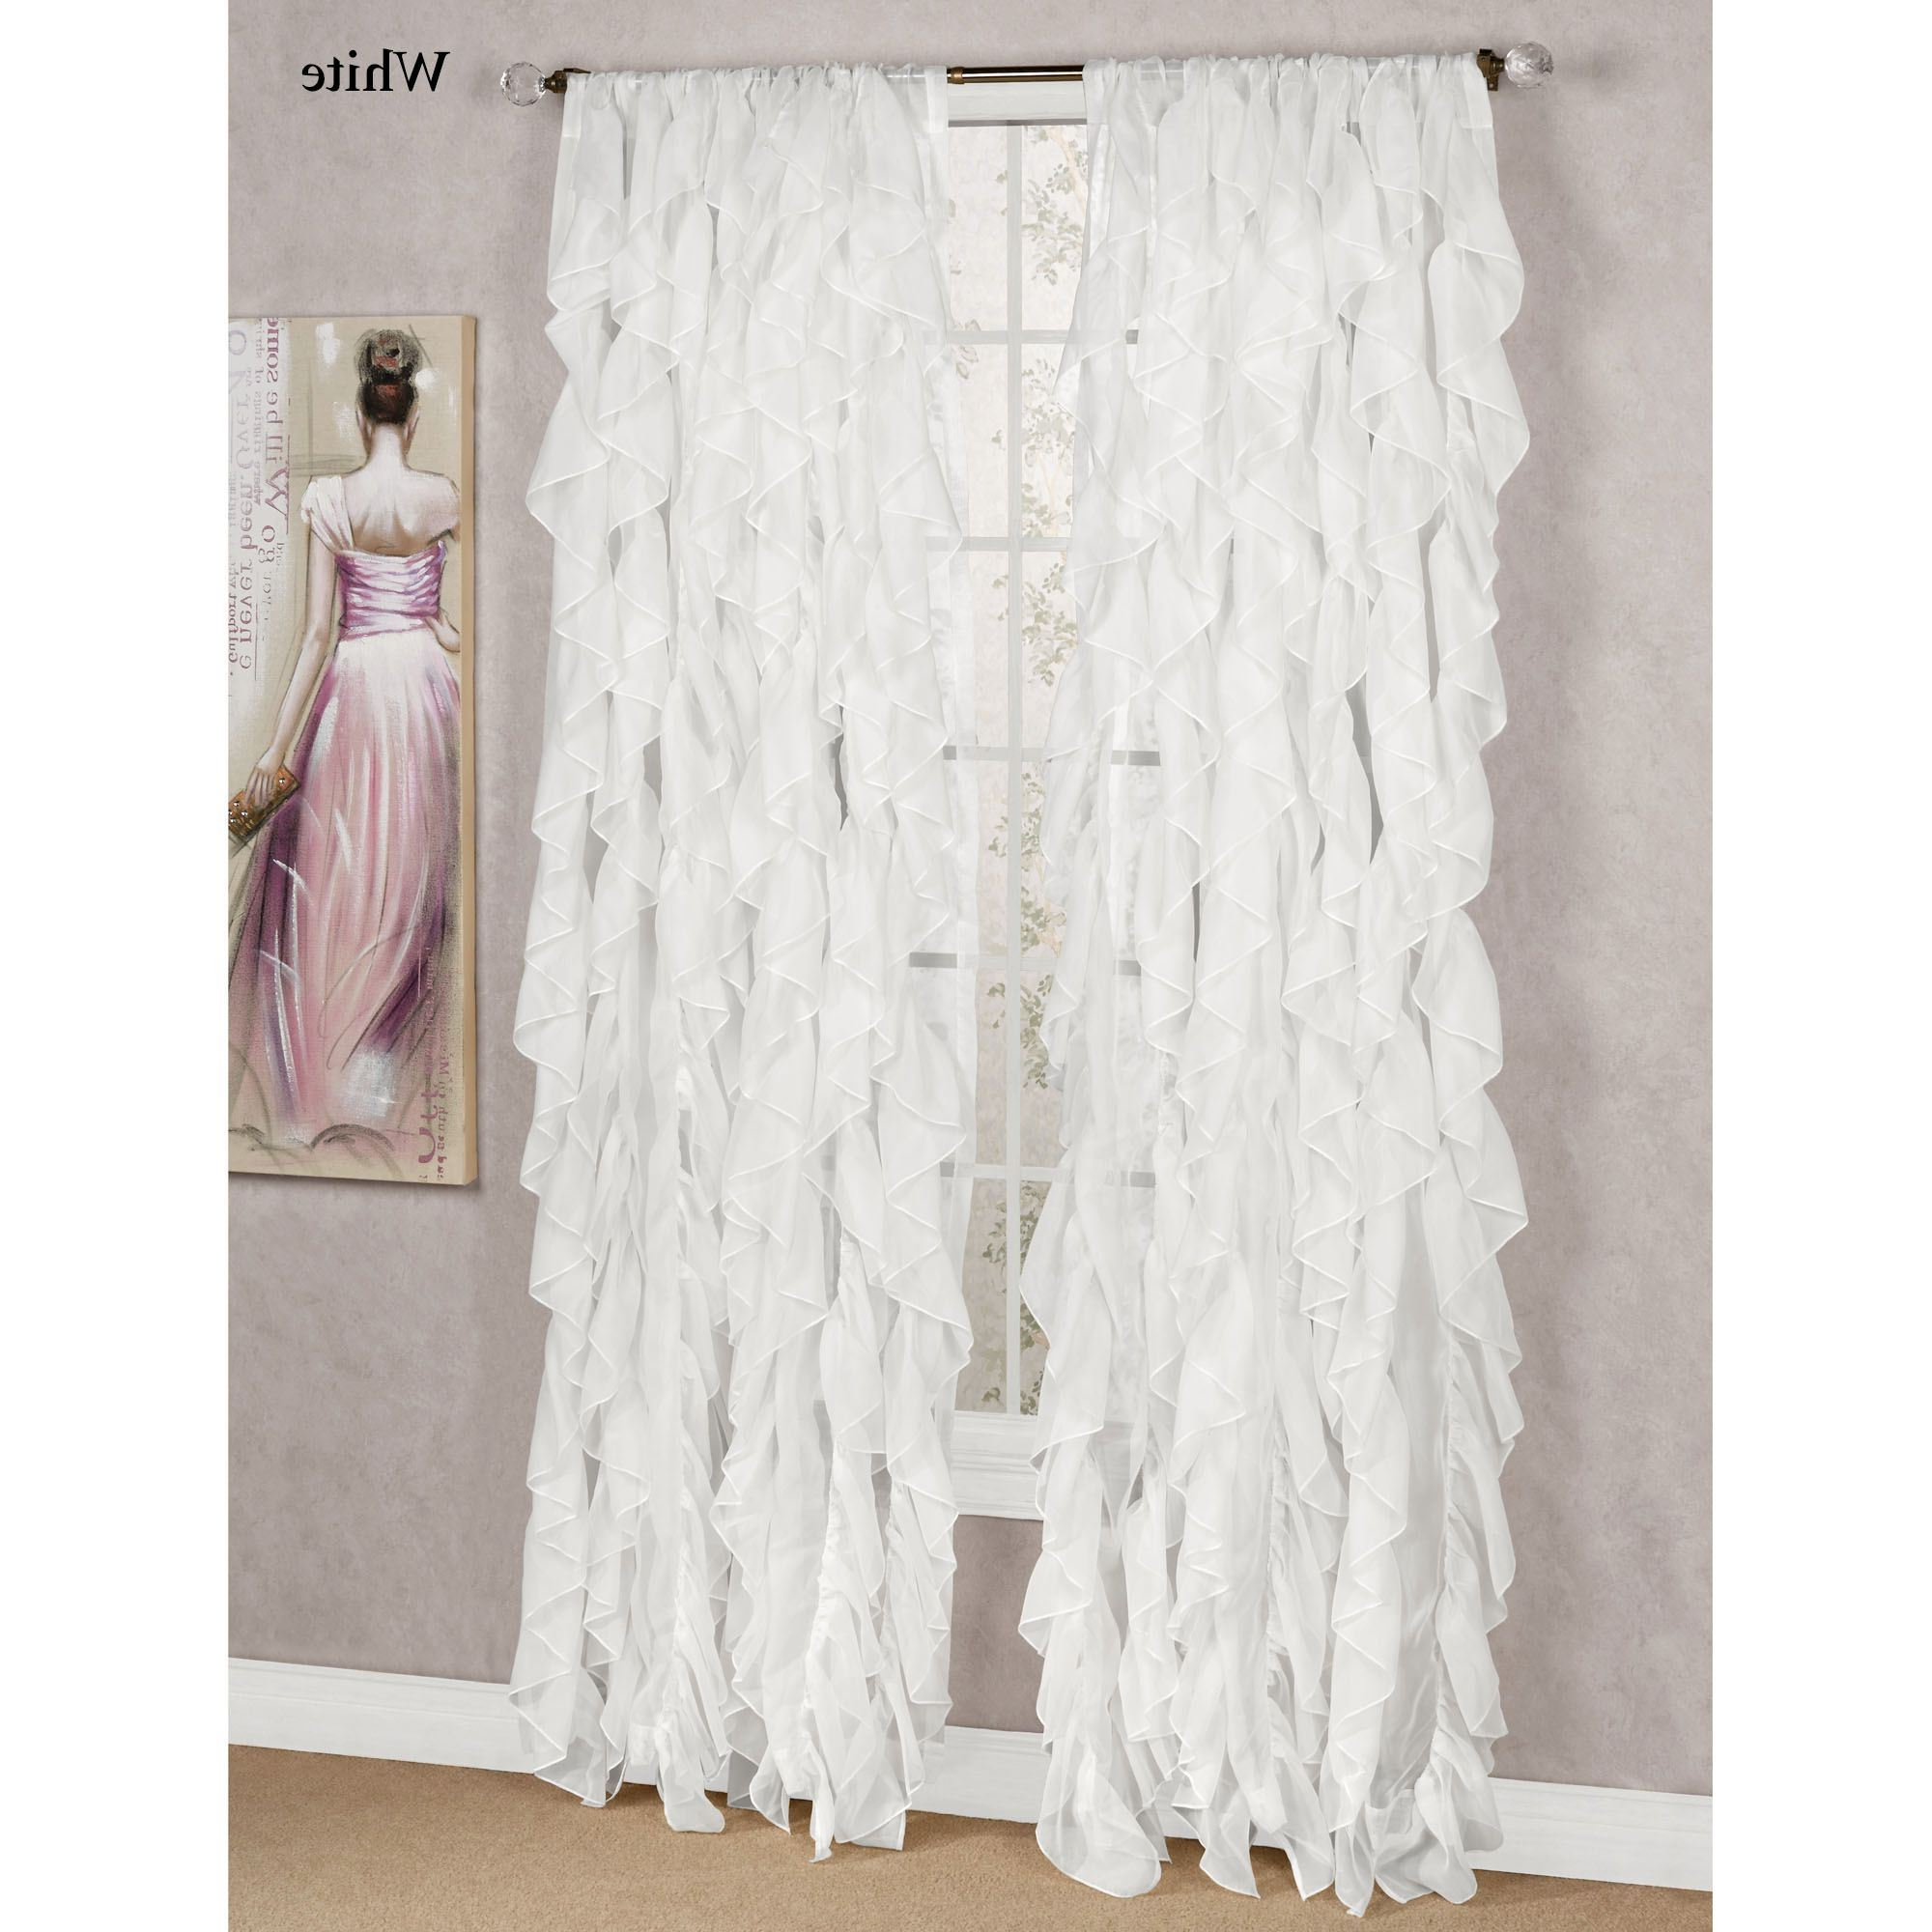 Popular Sheer Voile Ruffled Tier Window Curtain Panels Throughout Cascade Sheer Voile Ruffled Window Treatment (View 6 of 20)